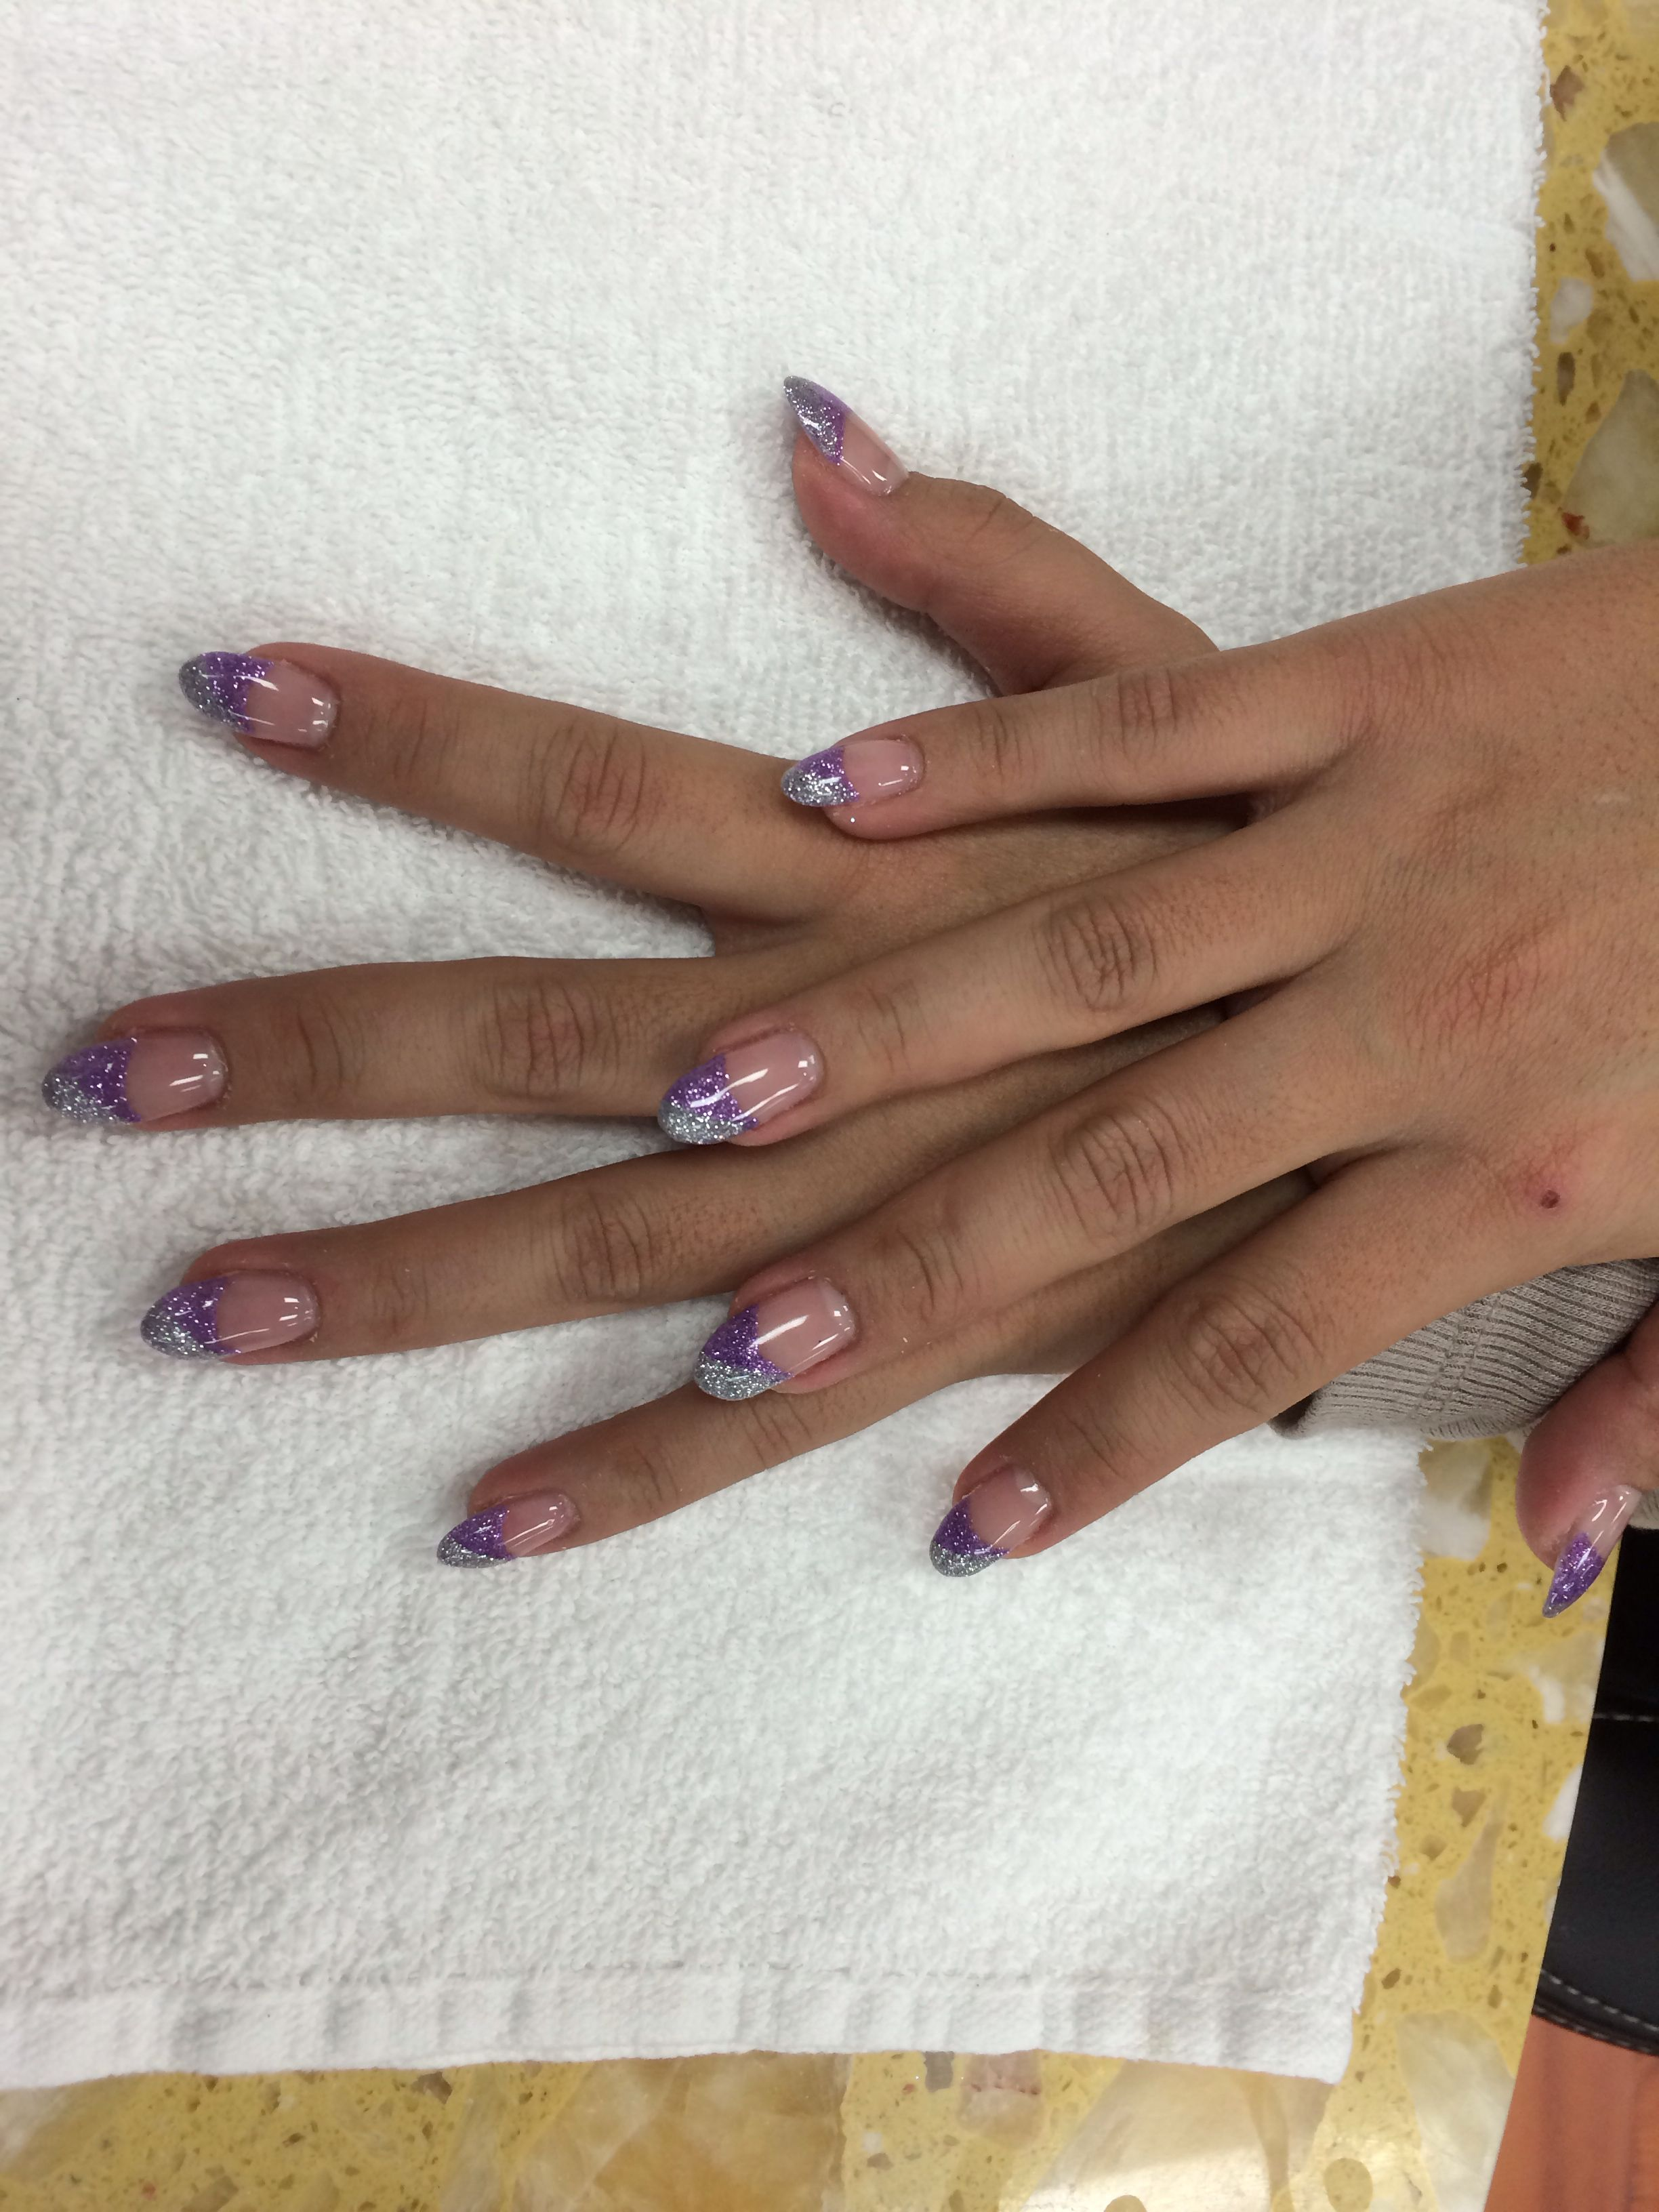 Stelio gel with gliters tips done by John at Terrace Beauty Nail ...